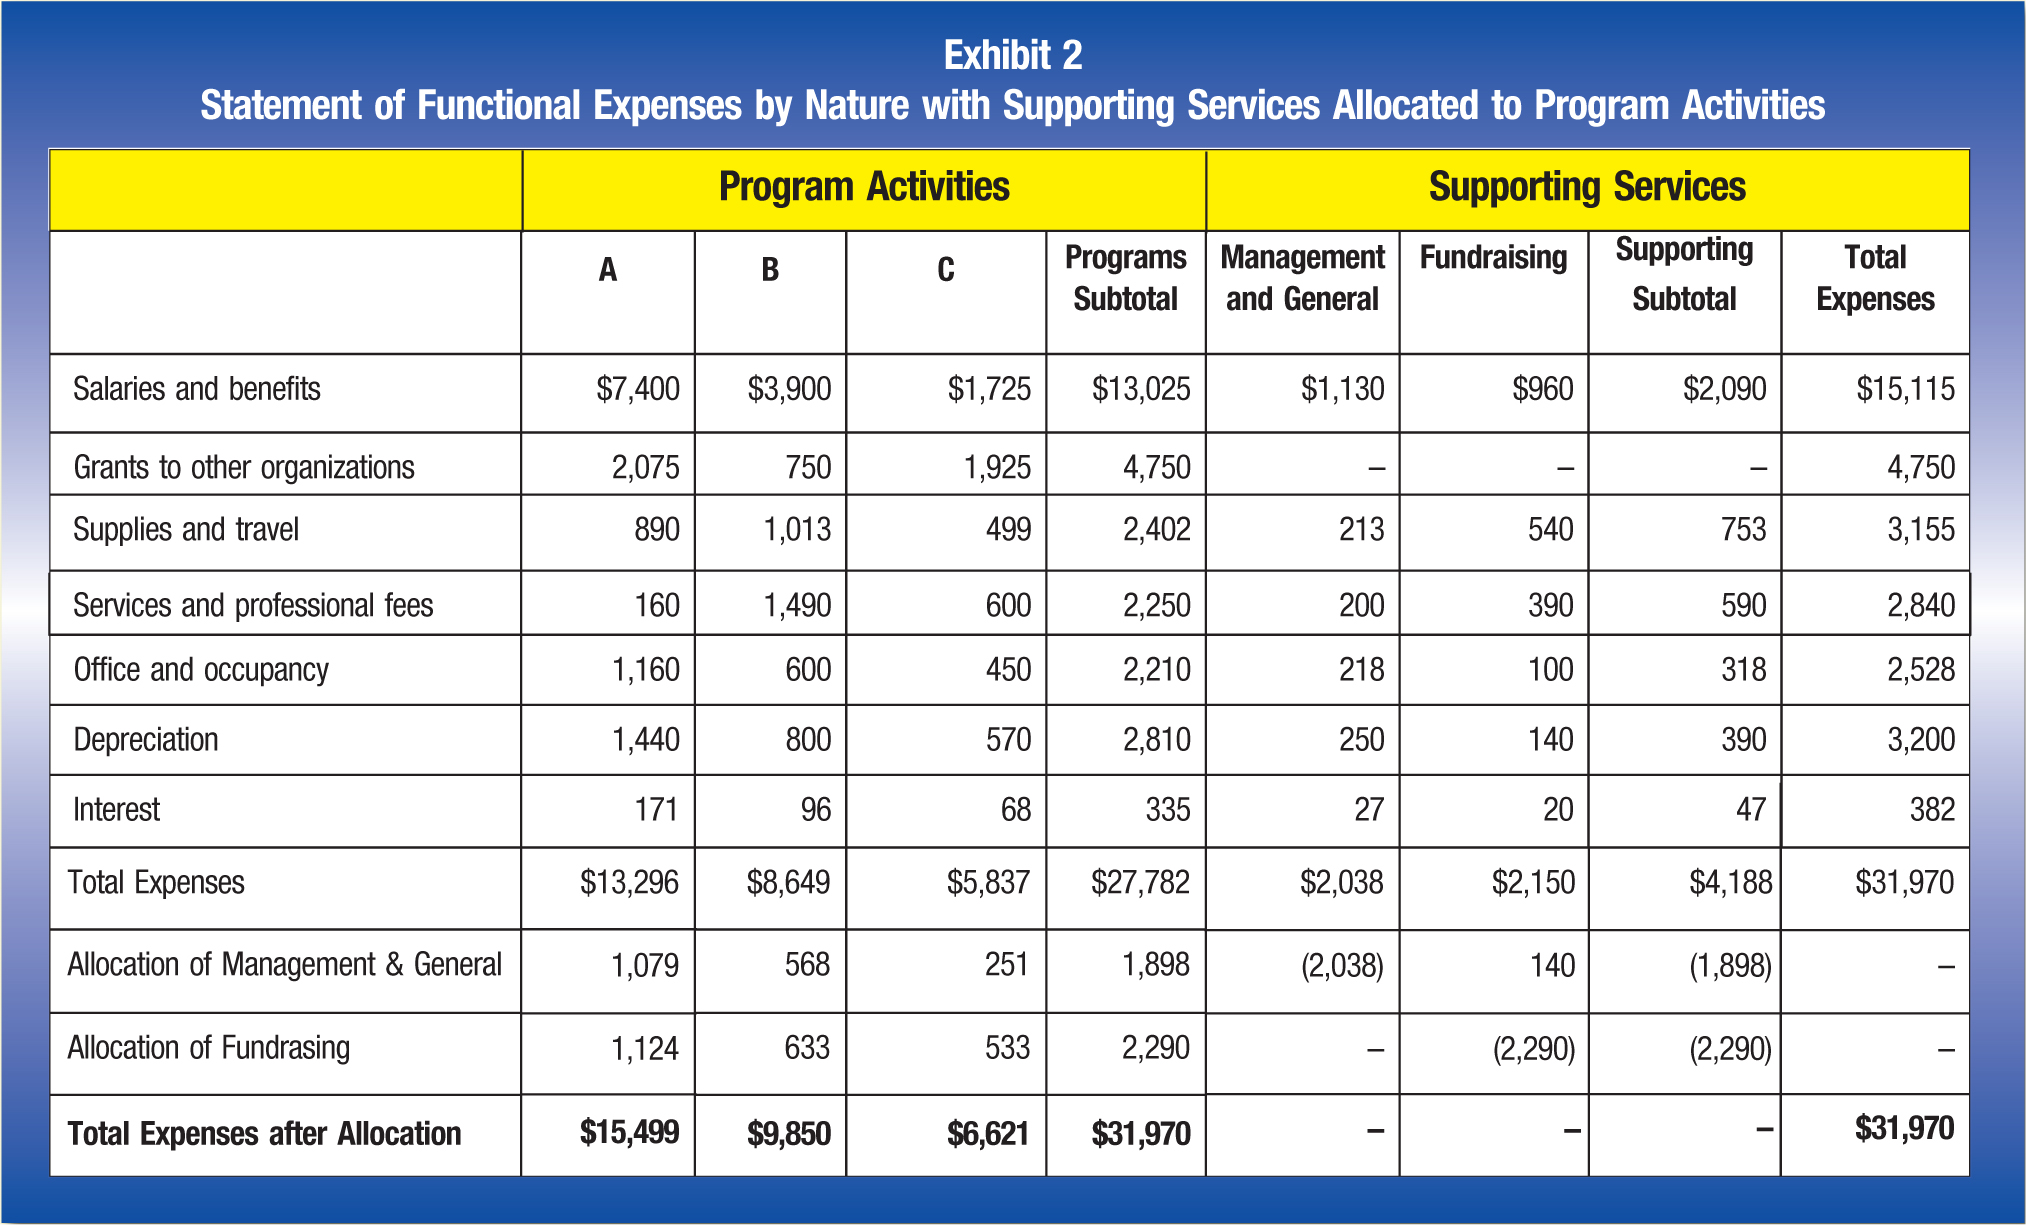 Program Activities; Supporting Services A; B; C; Programs Subtotal; Management and General; Fundraising; Supporting Subtotal; Total Expenses Salaries and benefits; $7,400; $3,900; $1,725; $13,025; $1,130; $960; $2,090; $15,115 Grants to other organizations; 2,075; 750; 1,925; 4,750; –; –; –; 4,750 Supplies and travel; 890; 1,013; 499; 2,402; 213; 540; 753; 3,155 Services and professional fees; 160; 1,490; 600; 2,250; 200; 390; 590; 2,840 Office and occupancy; 1,160; 600; 450; 2,210; 218; 100; 318; 2,528 Depreciation; 1,440; 800; 570; 2,810; 250; 140; 390; 3,200 Interest; 171; 96; 68; 335; 27; 20; 47; 382 Total Expenses; $13,296; $8,649; $5,837; $27,782; $2,038 $2,150; $4,188; $31,970 Allocation of Management & General; 1,079; 568; 251; 1,898; (2,038); 140; (1,898); – Allocation of Fundrasing; 1,124; 633; 533; 2,290; – (2,290); (2,290); – Total Expenses after Allocation; $15,499; $9,850; $6,621; $31,970 –; –; –; $31,970 The financial statements report certain categories of expenses that are attributable to more than one program or supporting function. Therefore, these expenses require allocation on a reasonable basis that is consistently applied. The expenses that are allocated include depreciation, interest, and office and occupancy, which are allocated on a square-footage basis, as well as salaries and benefits, which are allocated on the basis of estimates of time and effort. In order to properly display the true costs for each program area of the organization, the financial statements display a proportionate allocation of supporting services expenses to each program area. The organization has chosen to allocate management and general expenses by full-time equivalent attributable to each program area.